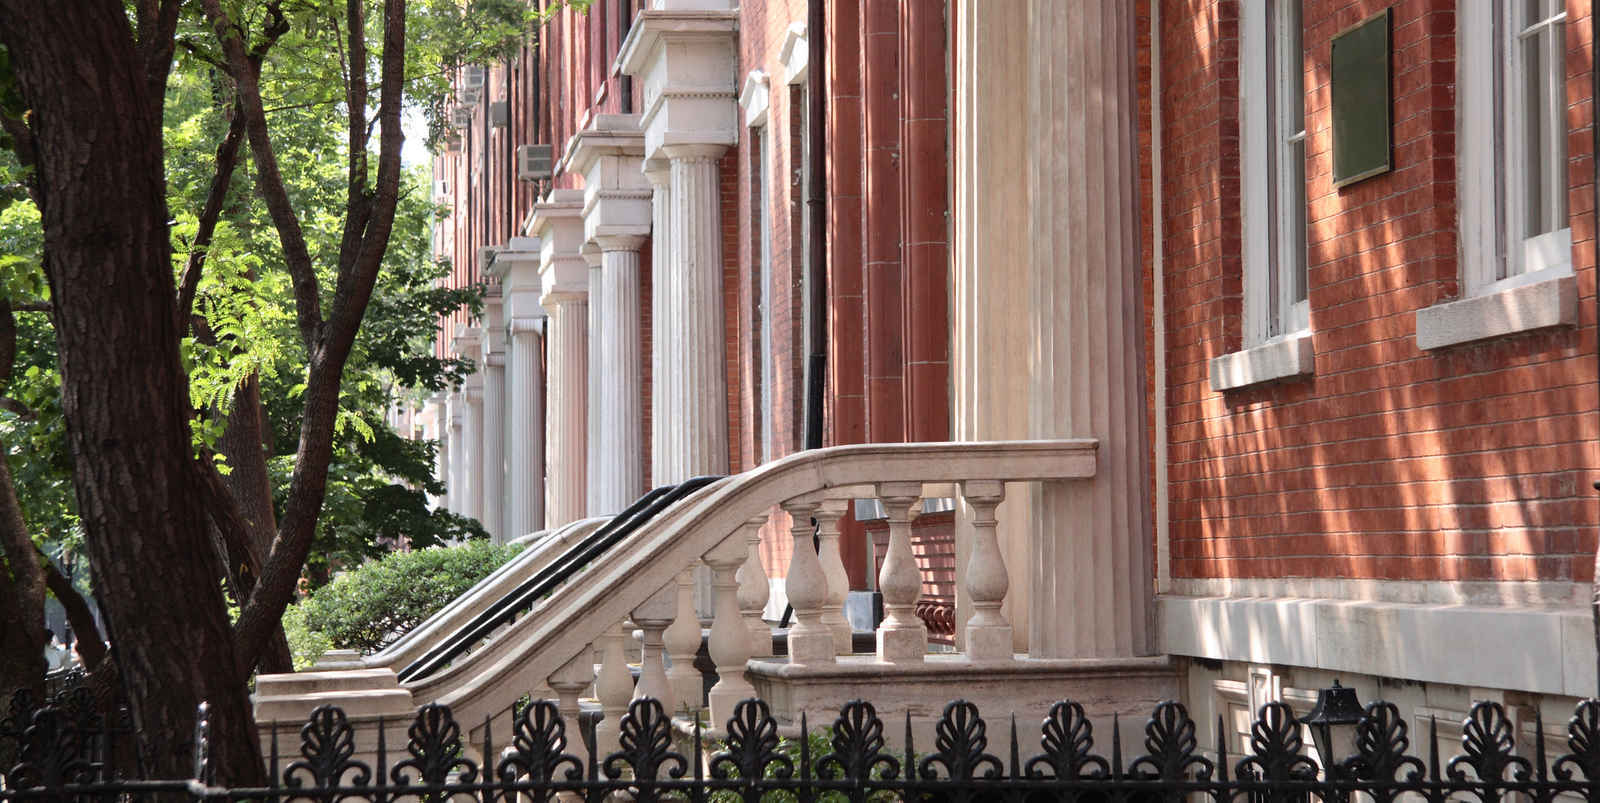 Greenwich Village residential townhouses, New York City